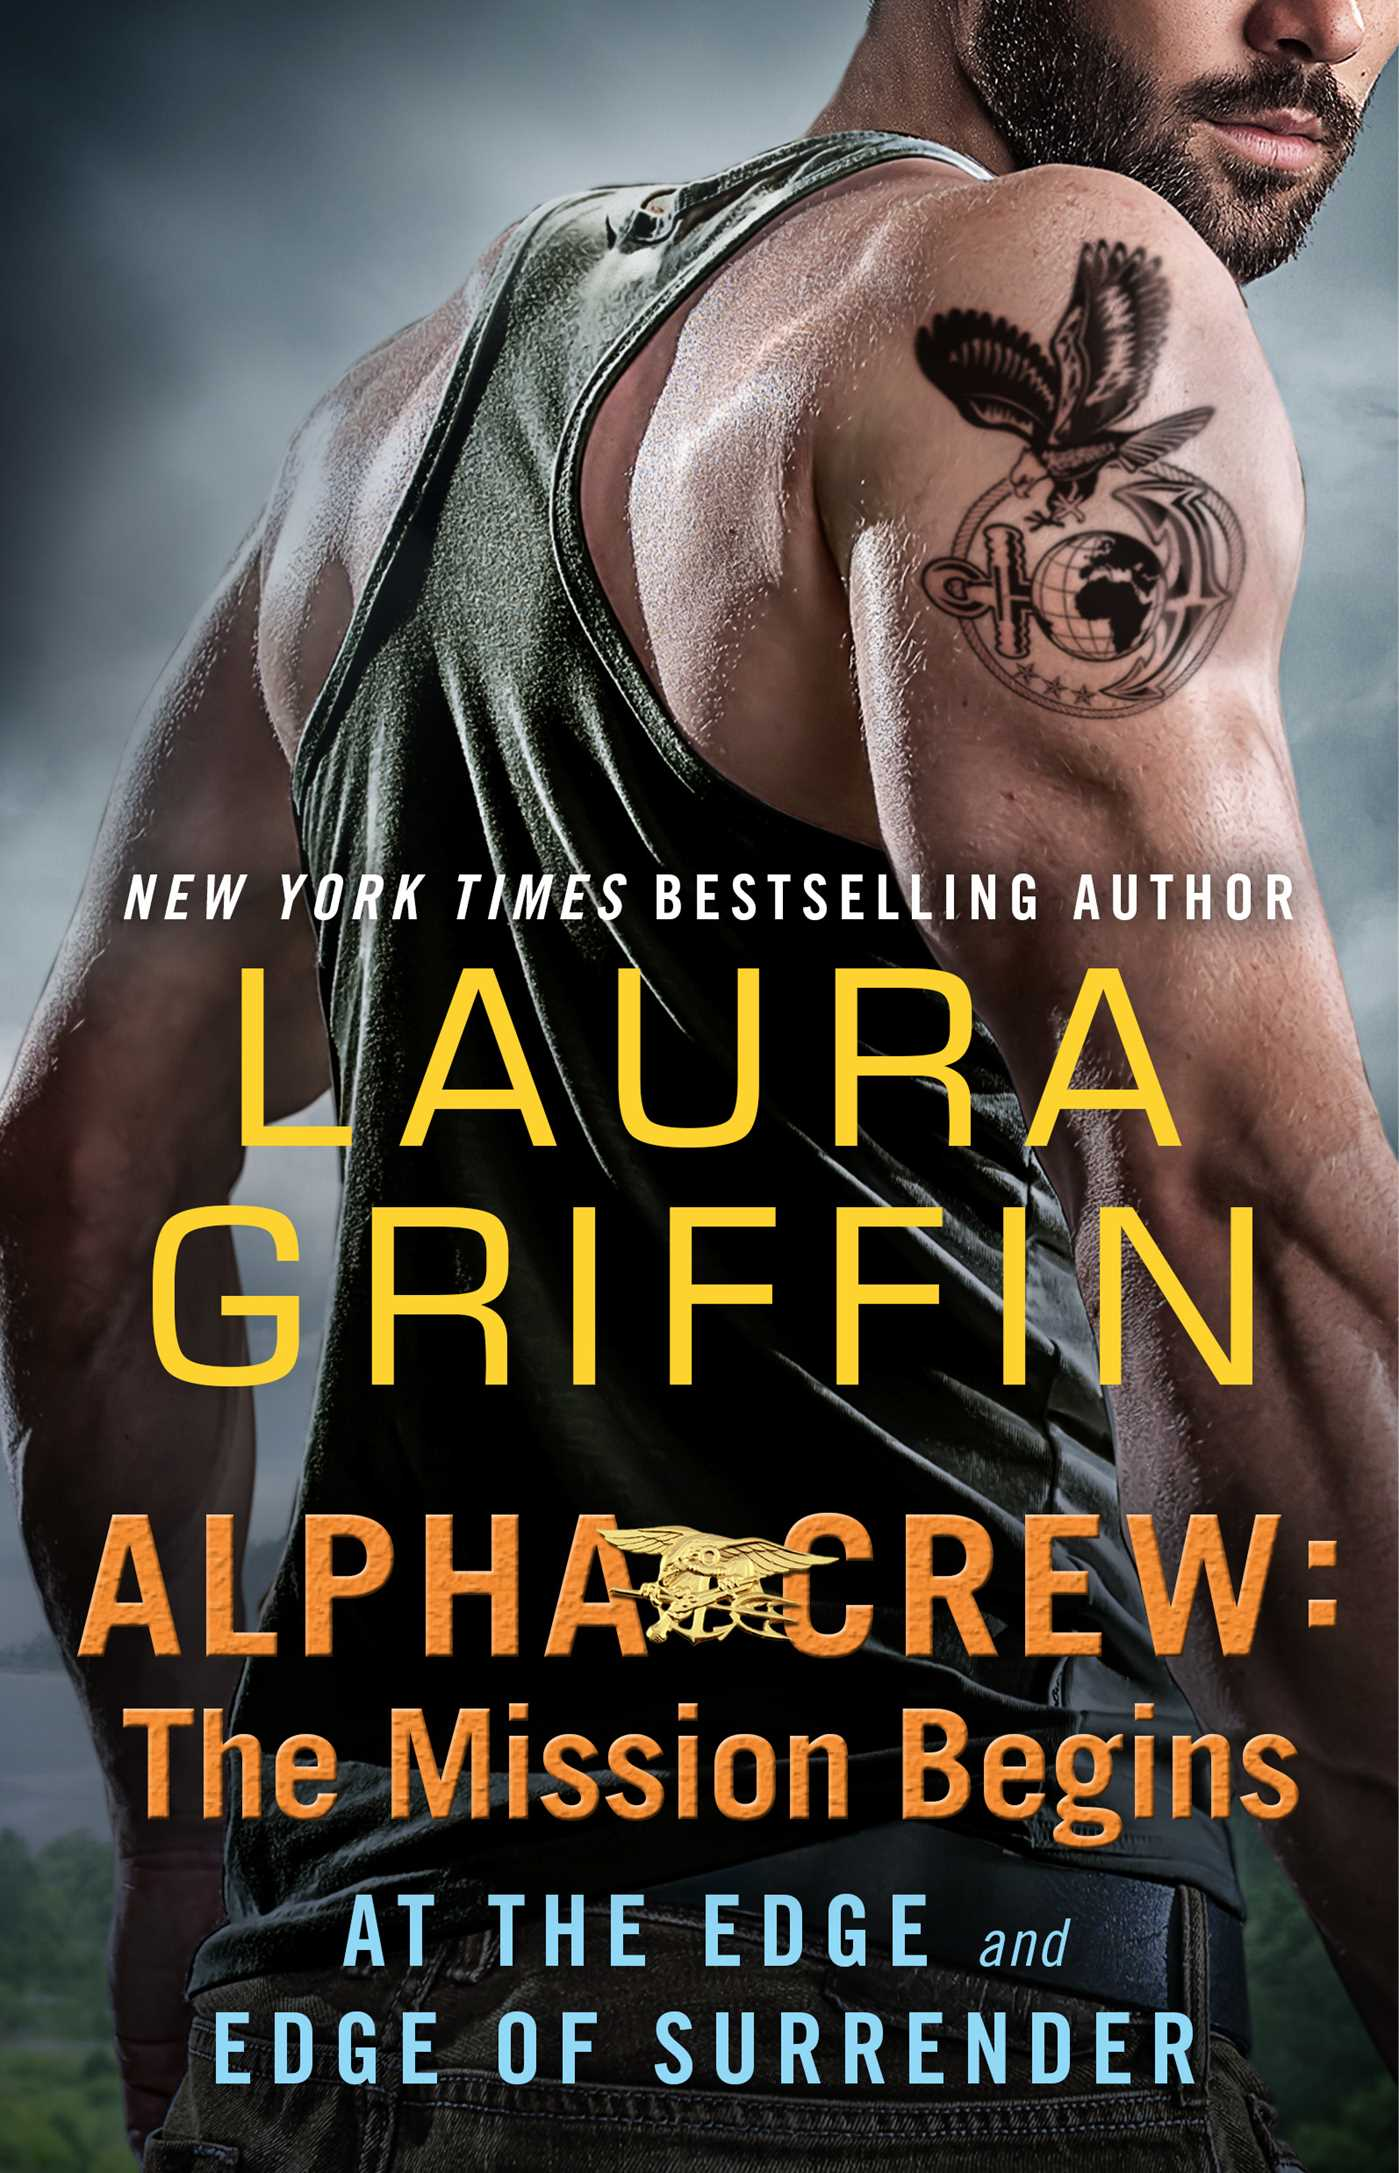 Alpha Crew: The Mission Begins At the Edge and Edge of Surrender